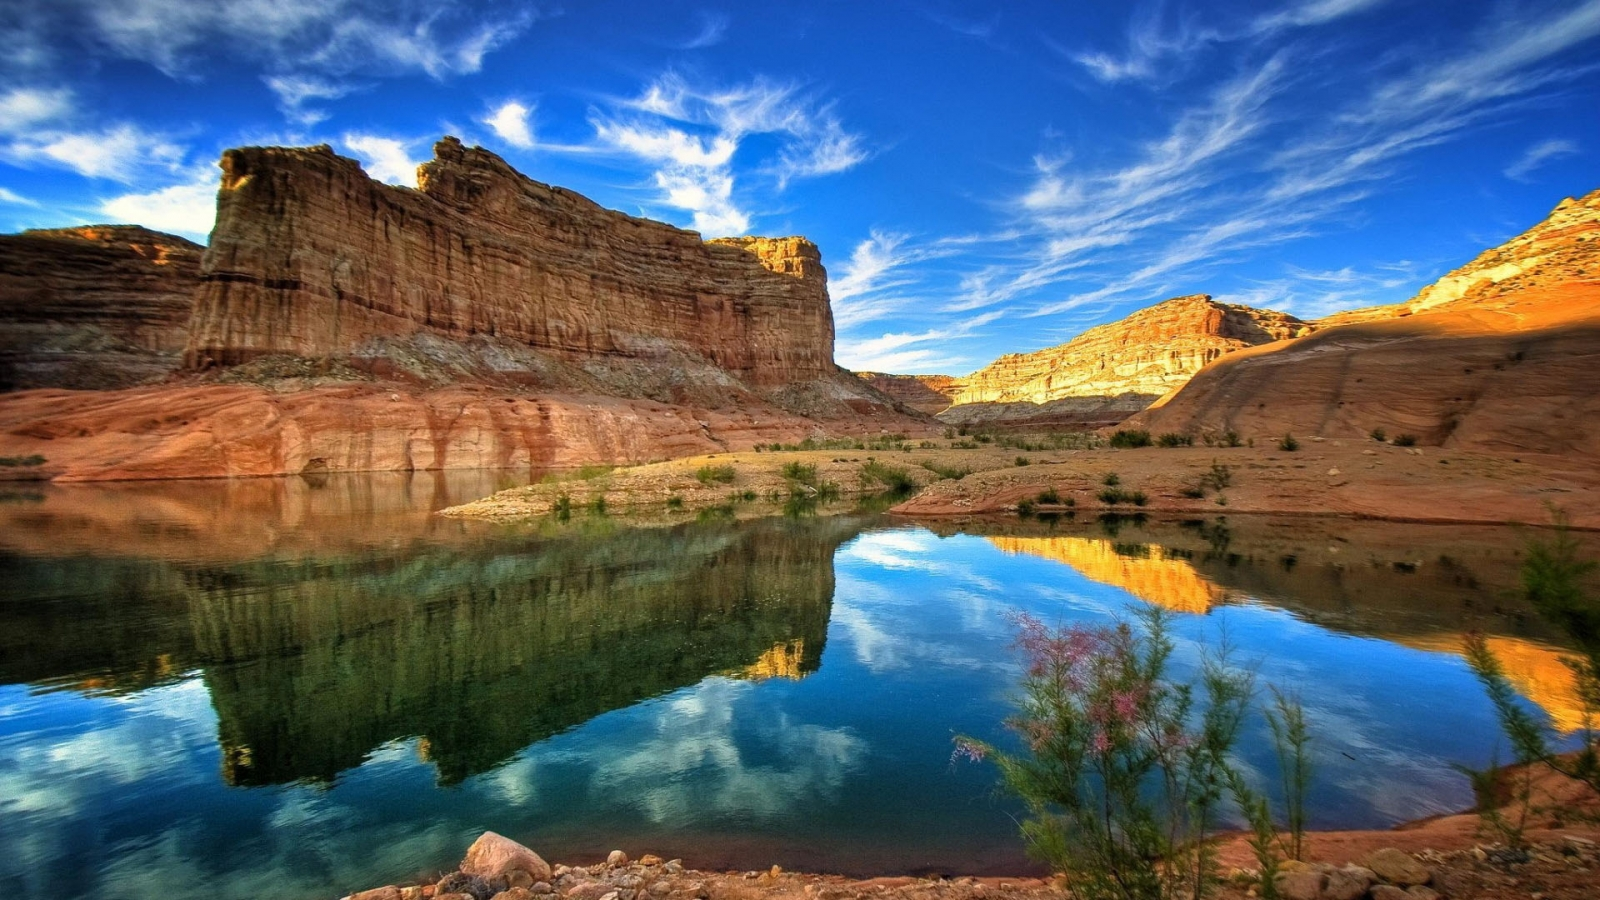 Canyon Colorado River HD Desktop Mobile Wallpaper Background   9walls 1600x900